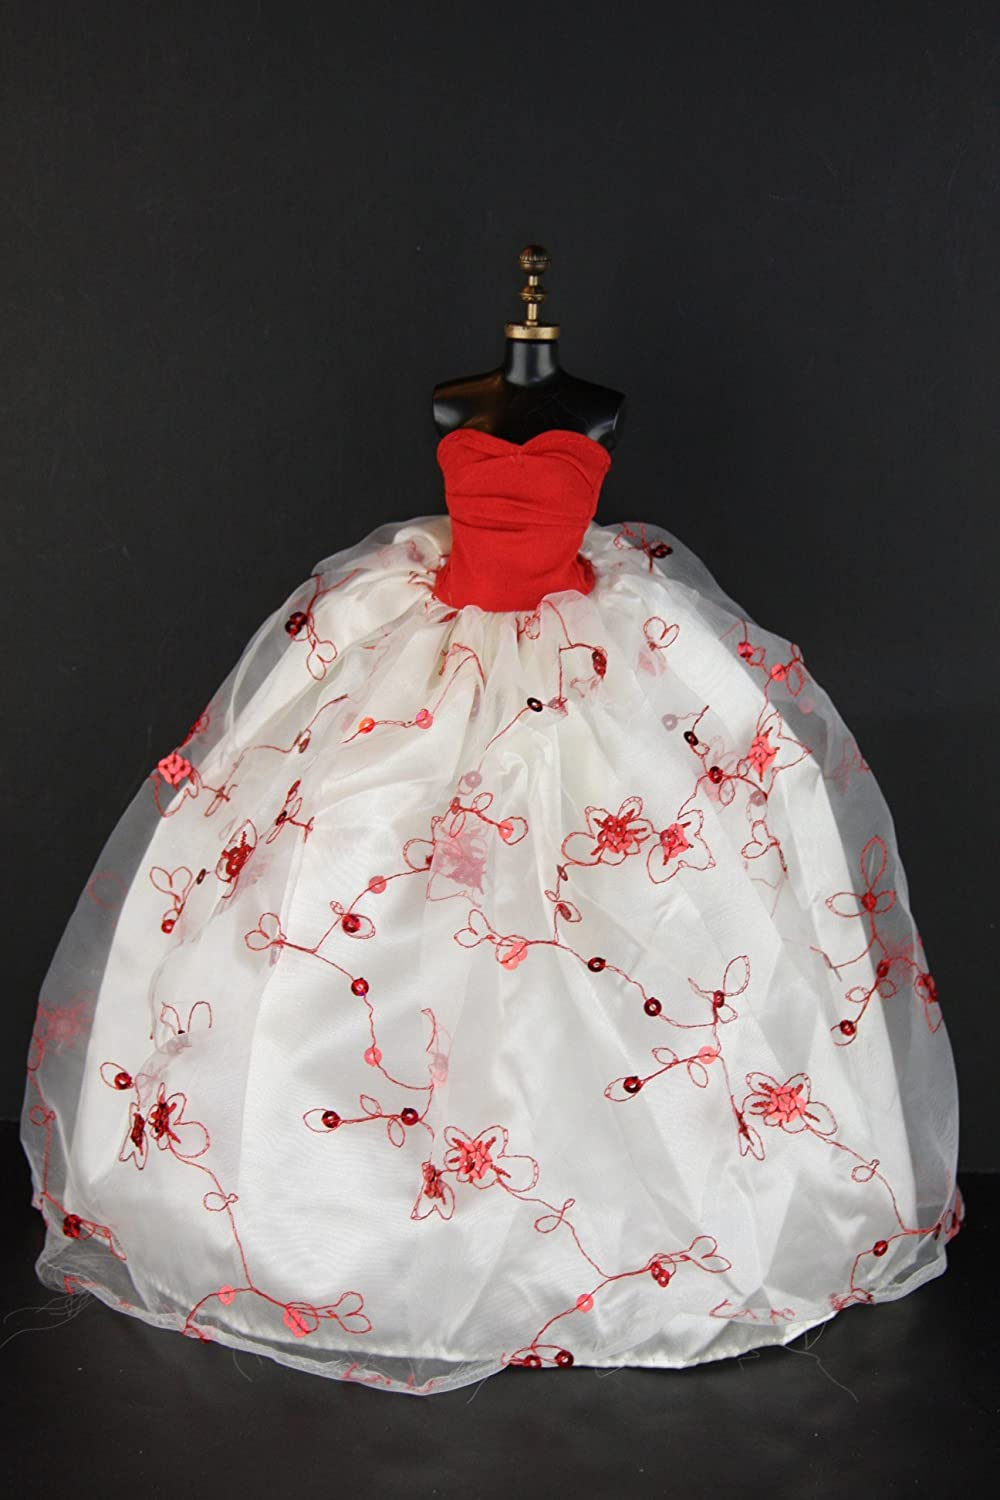 Elegant White Gown with Red Accents and Sequins Made to Fit Barbie Doll Olivia/'s Doll Closet SG/_B002EQZTK4/_US